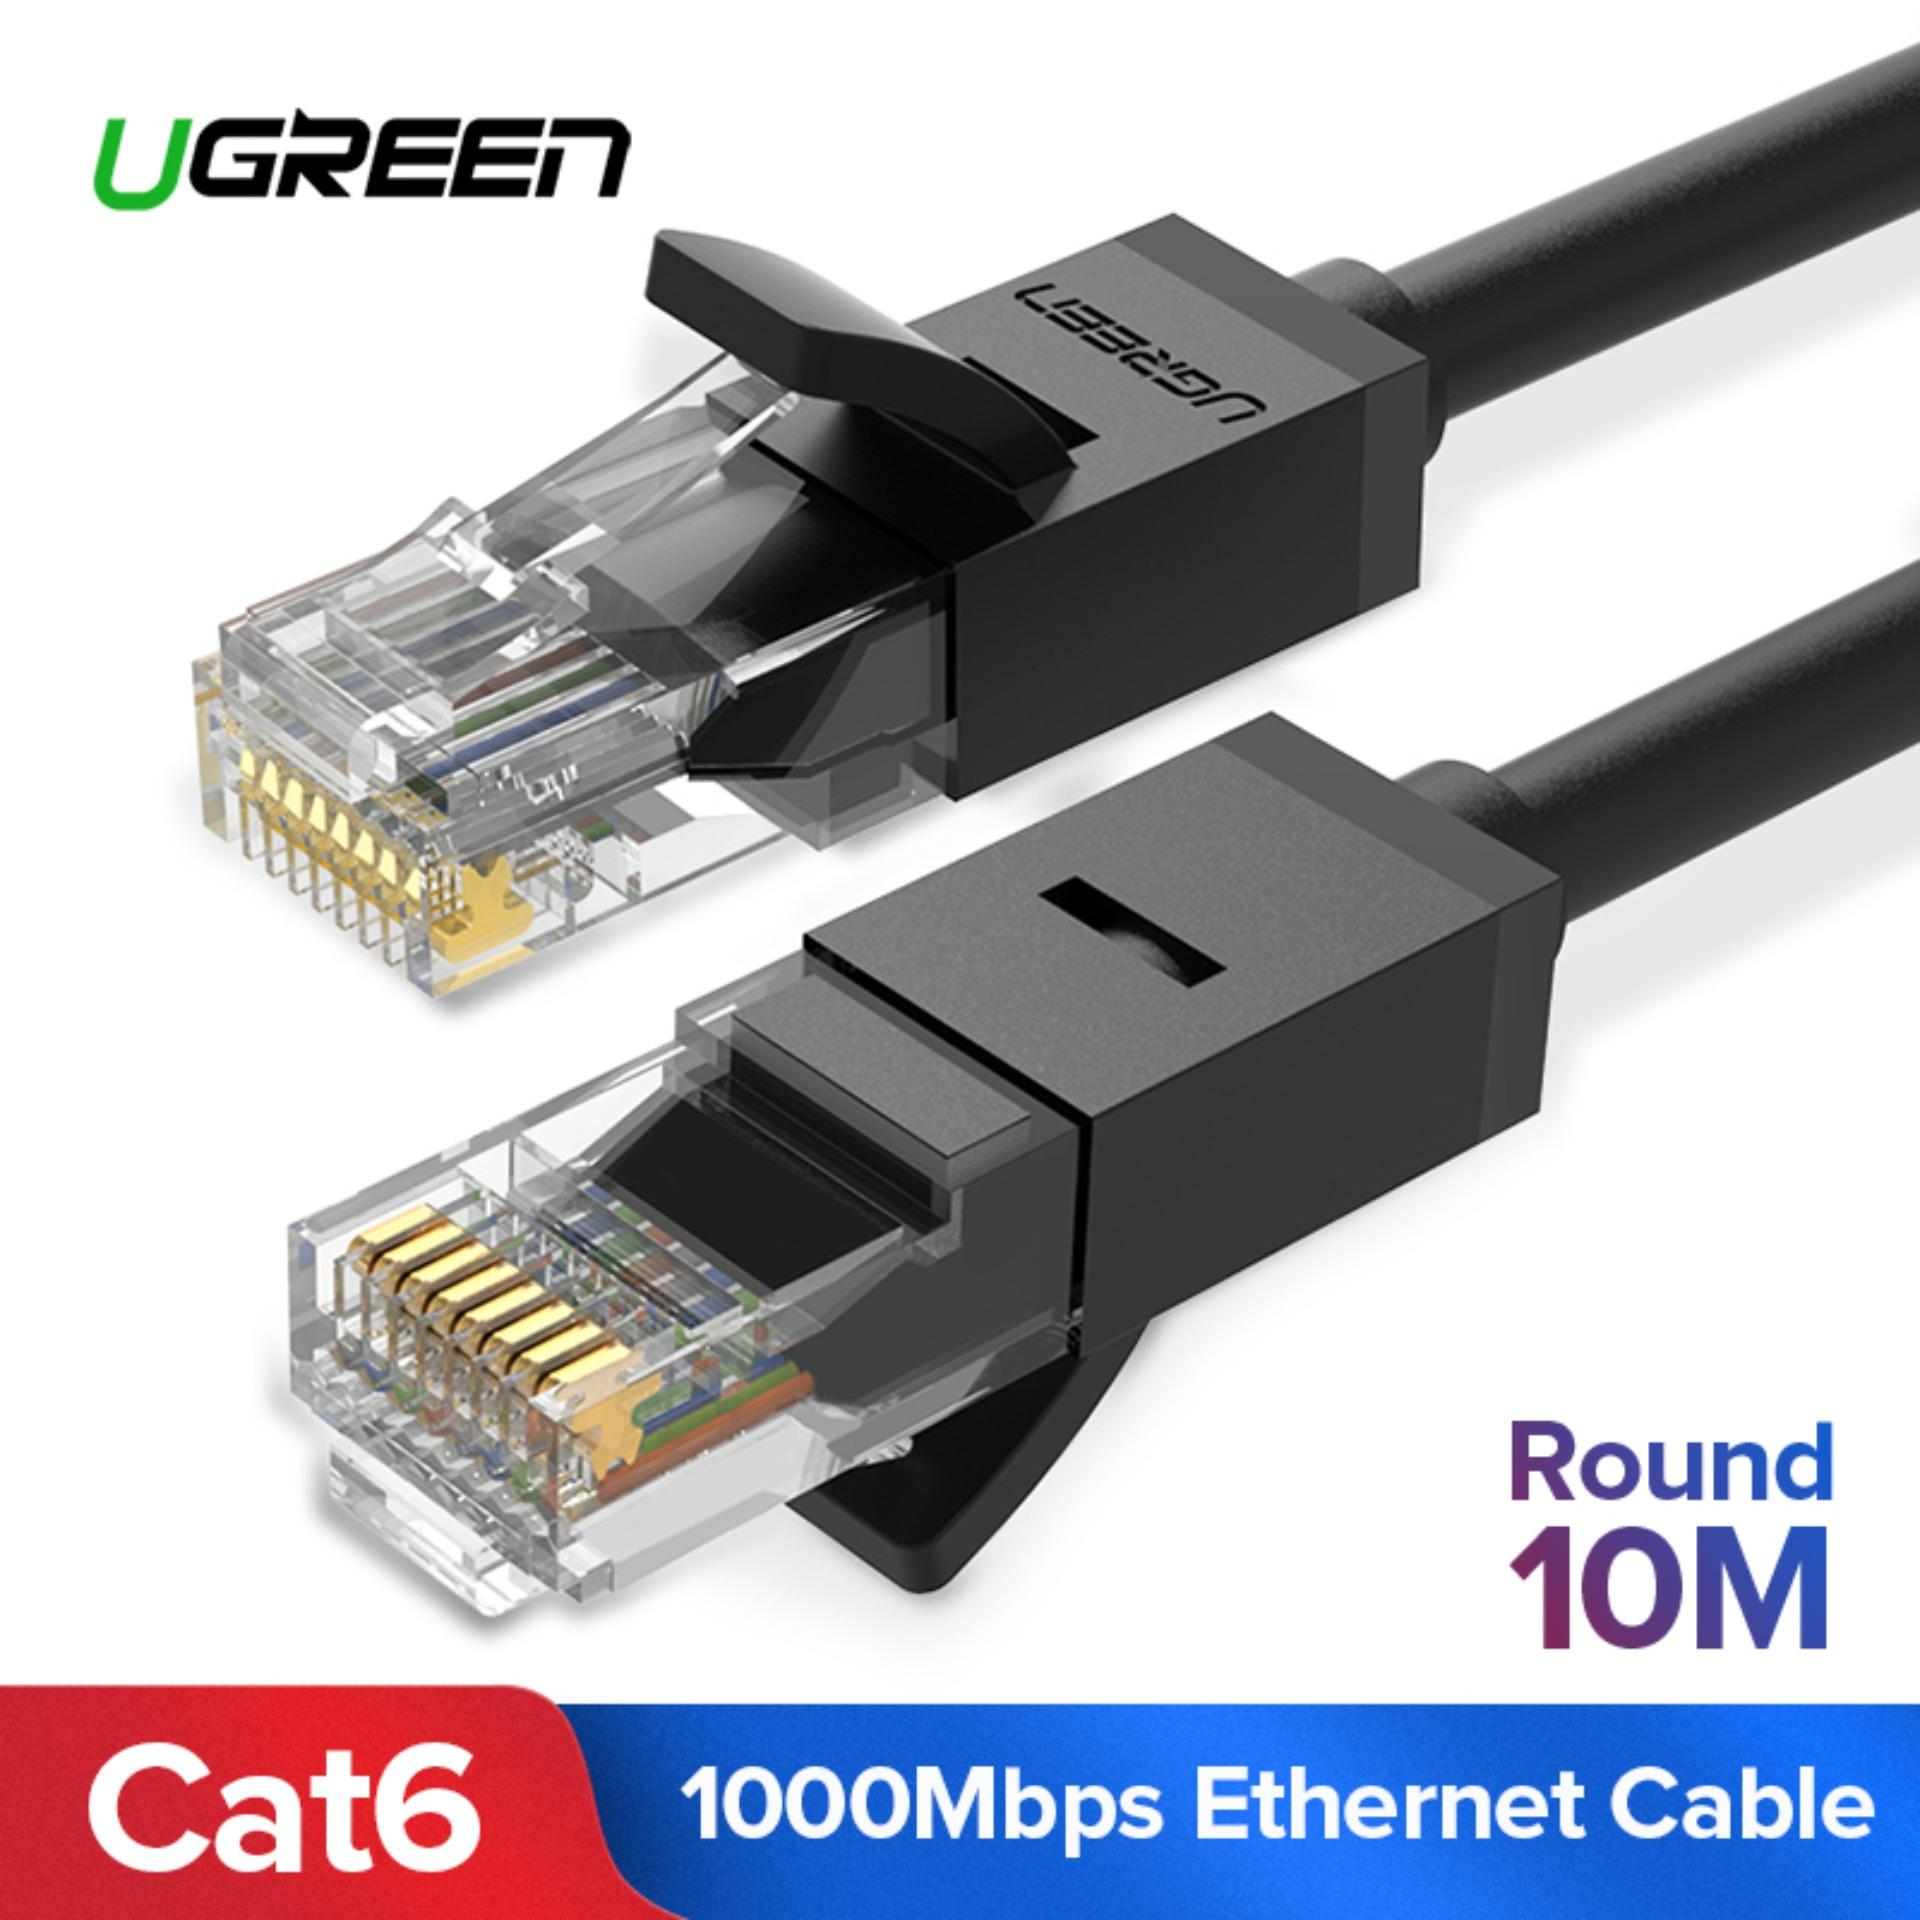 UGREEN 10Meter Cat6 Ethernet Patch Cable Gigabit RJ45 Network Wire Lan Cable Plug Connector for Mac